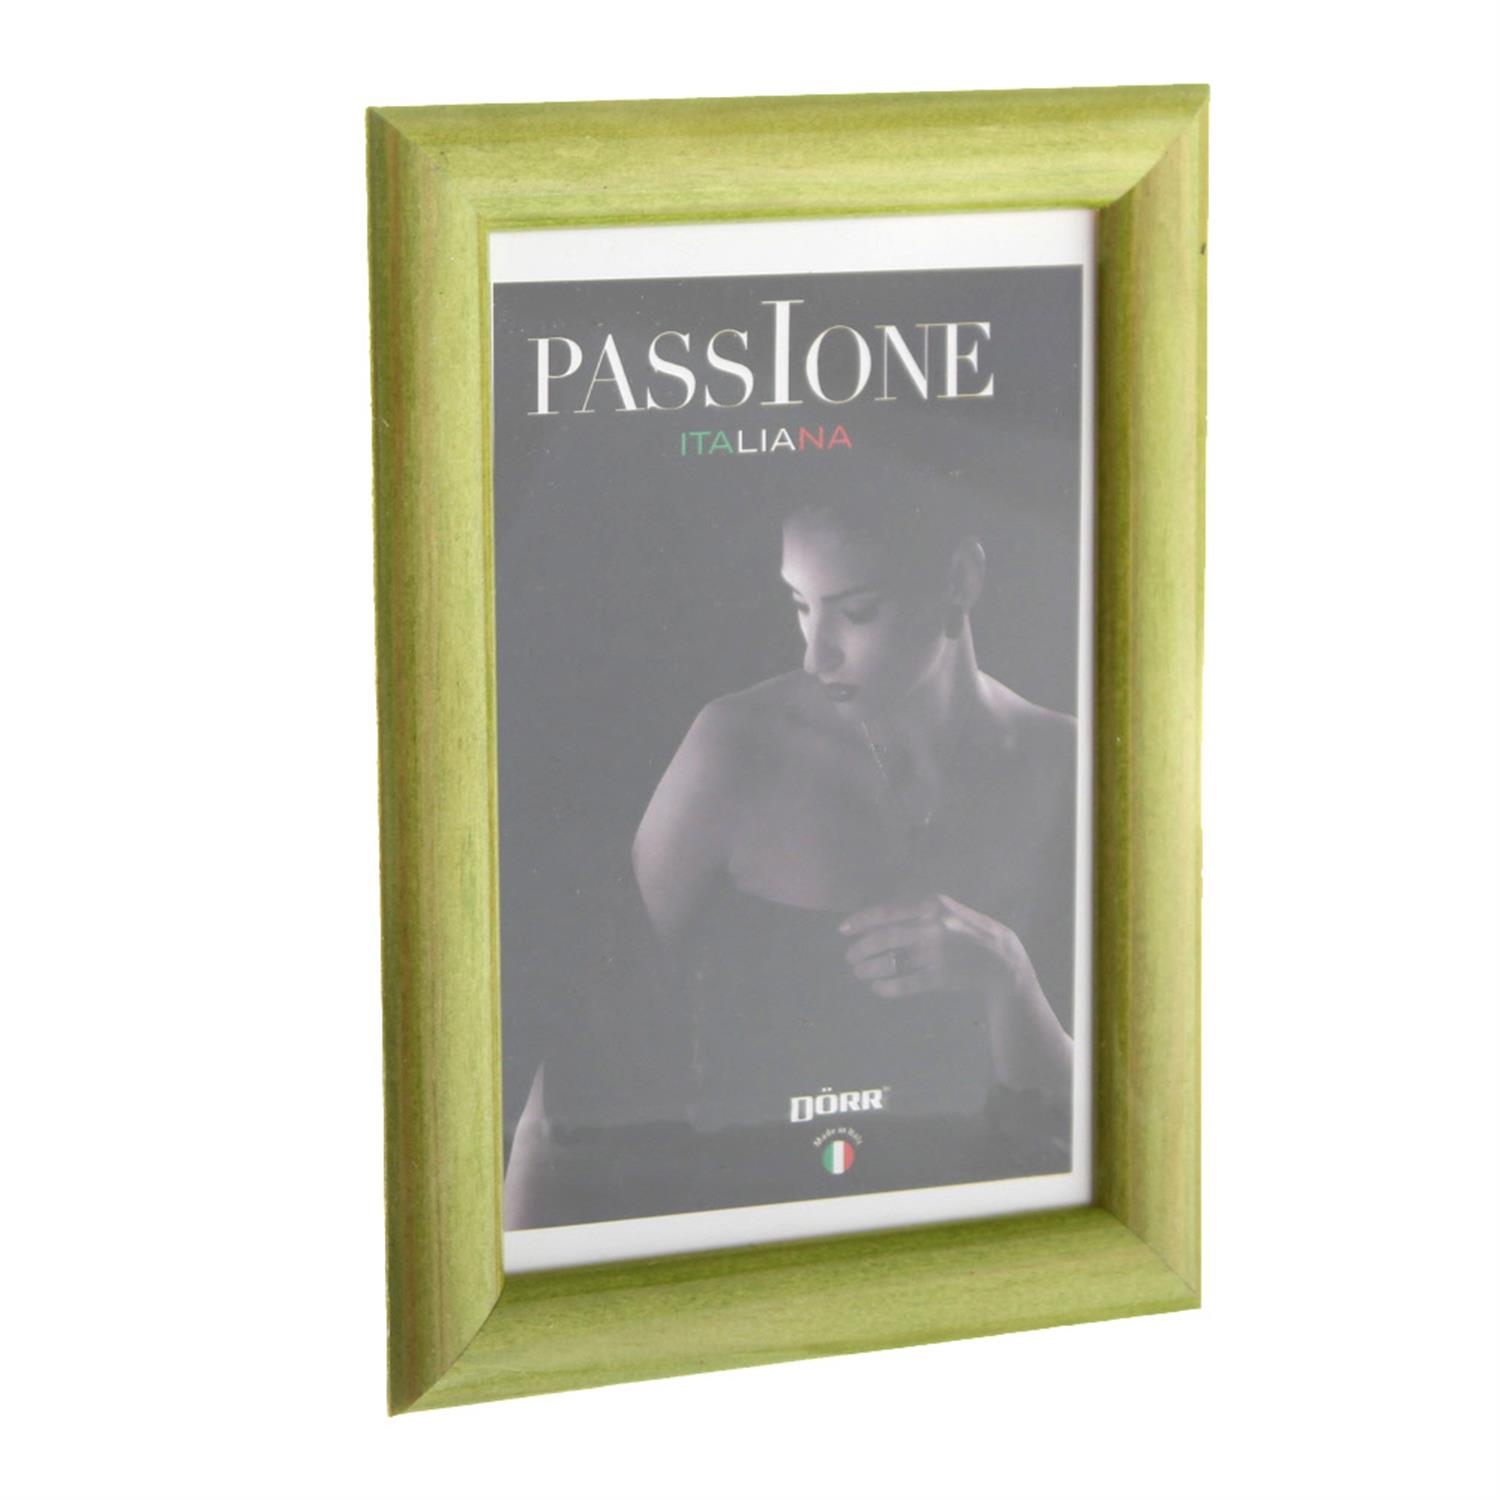 Dorr Guidi Glossy Green Wooden 7x5 Photo Frame